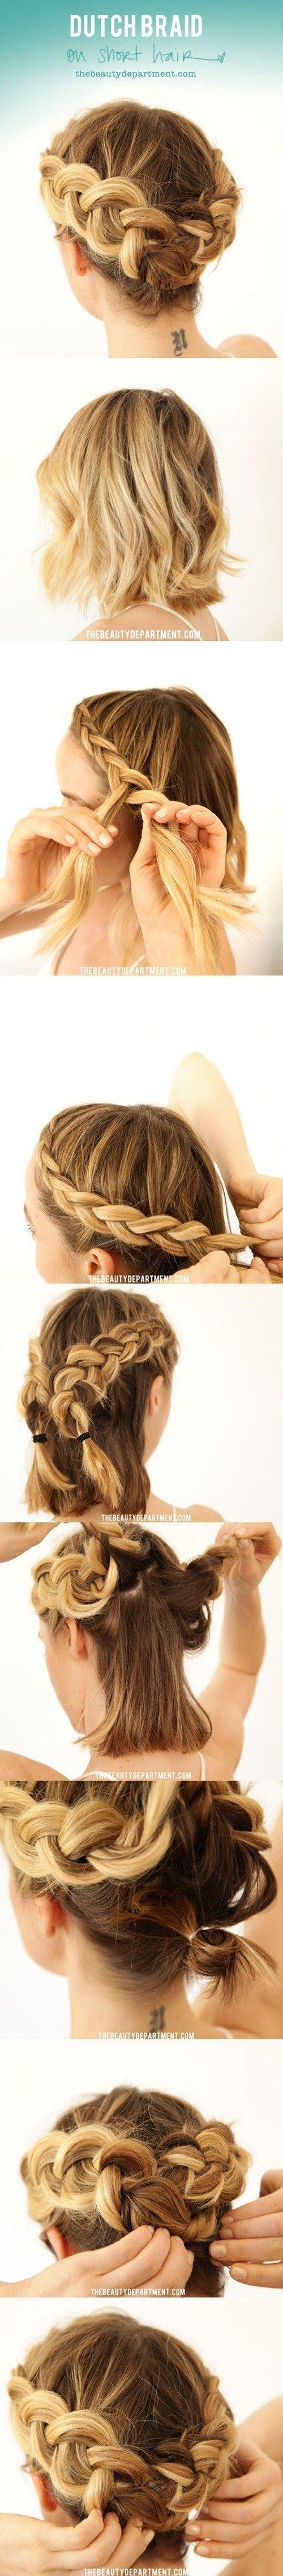 Dutch braid over